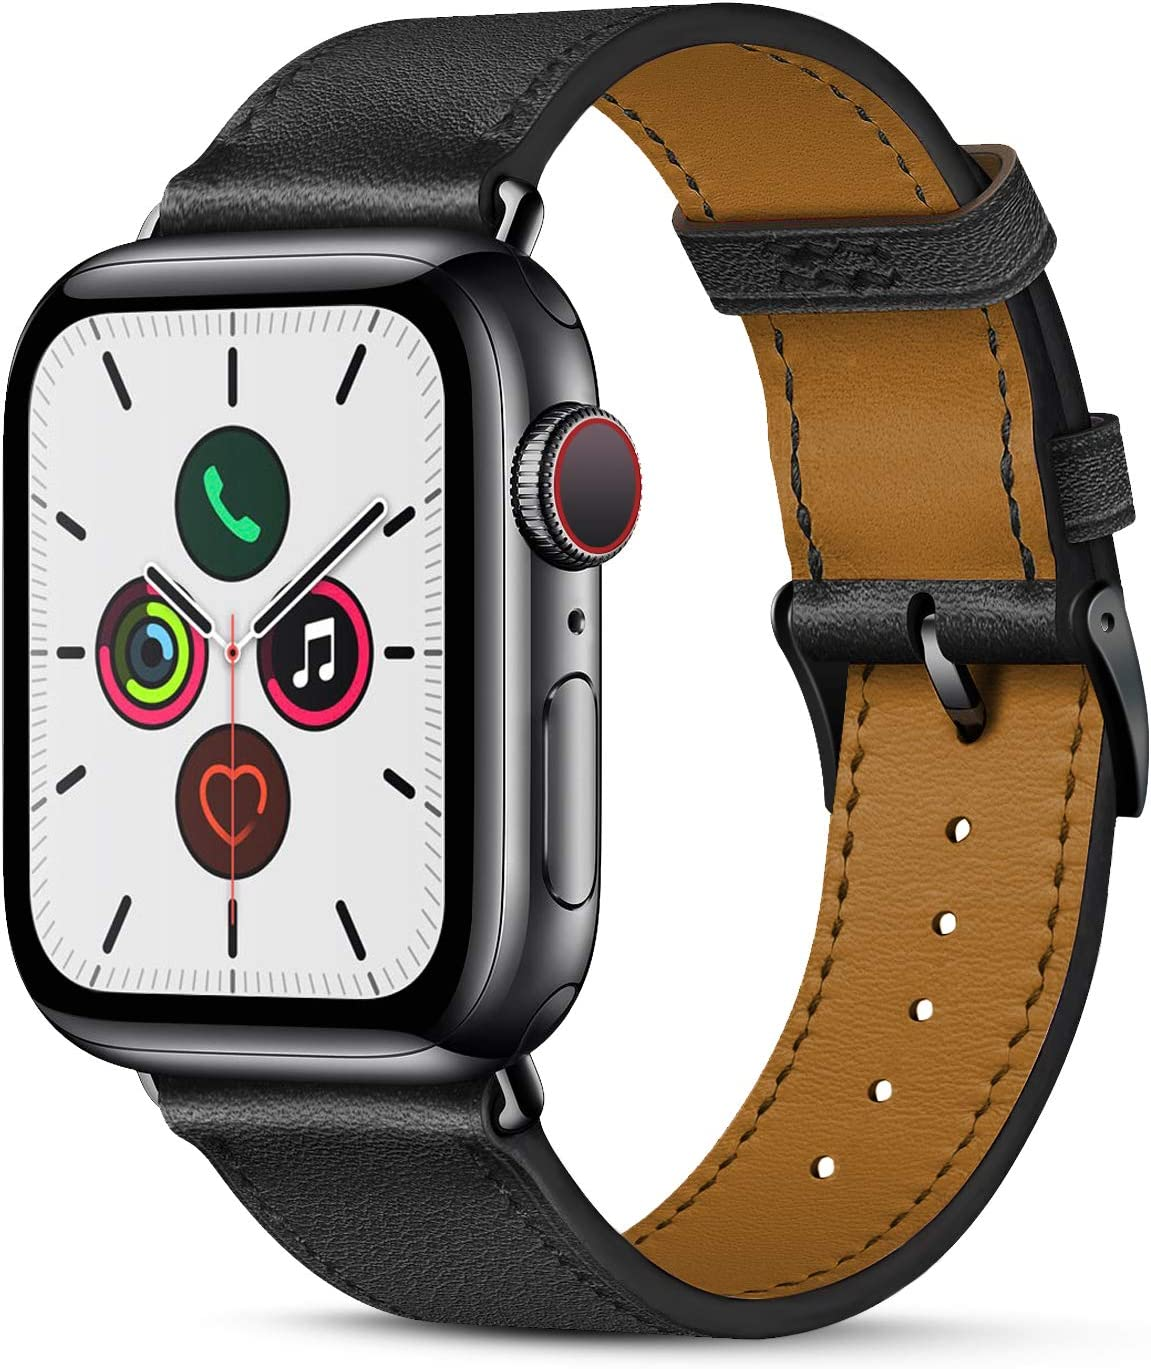 Compatible with apple watch band 44mm 42mm for iWatch Bands Series 5 4 3 2 1 Women Men, Pierre Case Durable Genuine Leather Replacement Strap, Adjustable Stainless Metal Clasp,Black